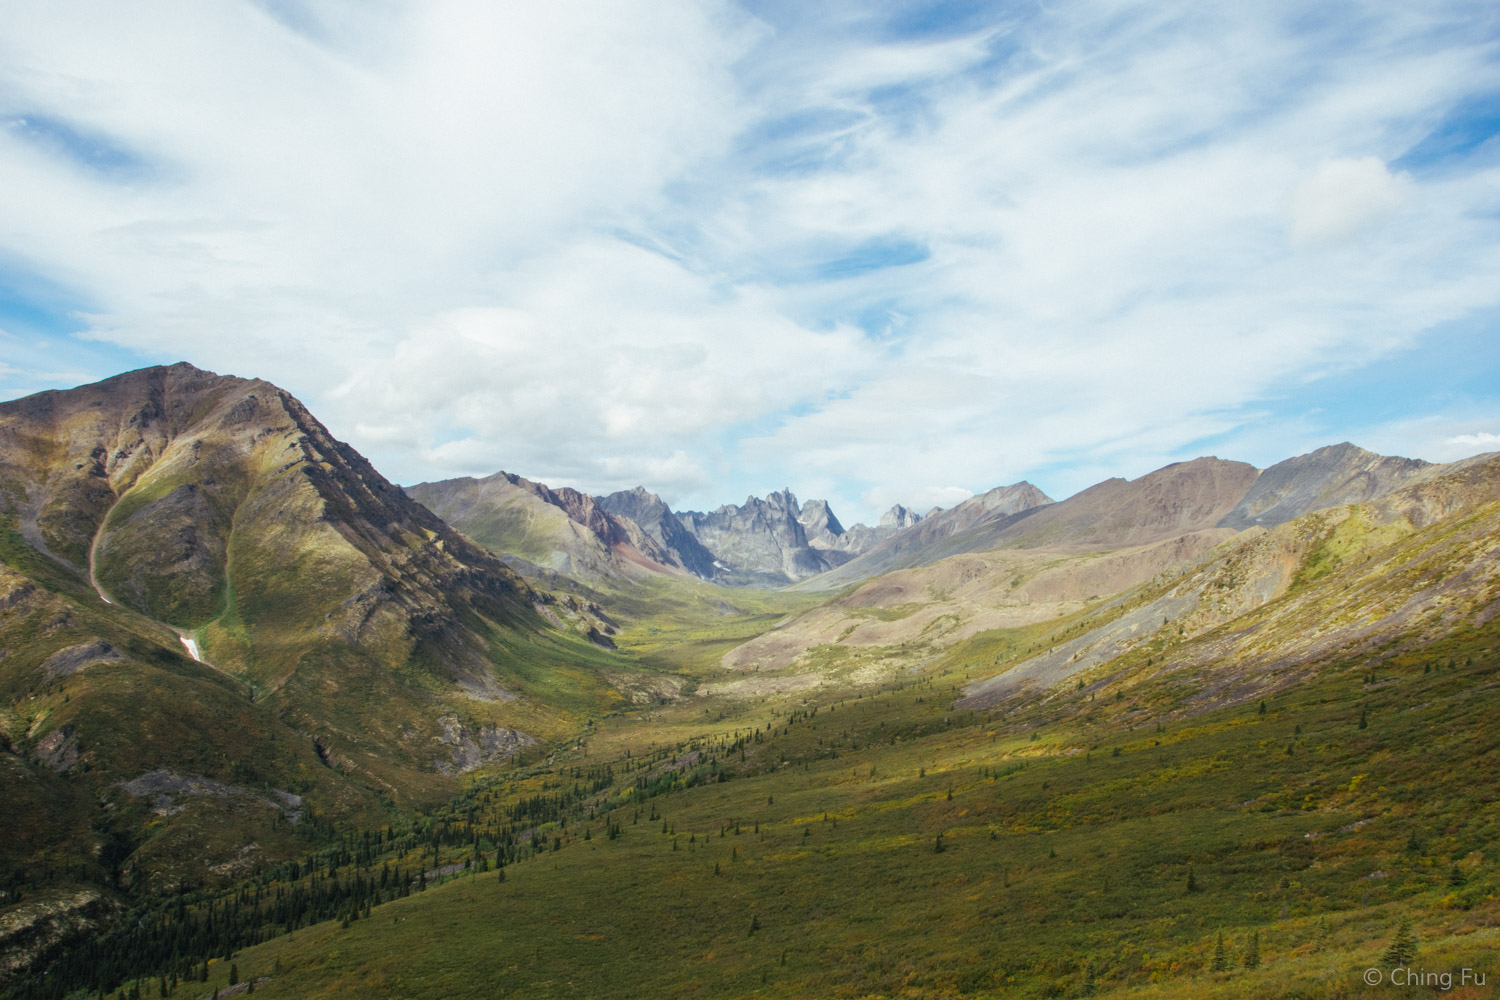 Grizzly Valley and Tombstone Range at the end.